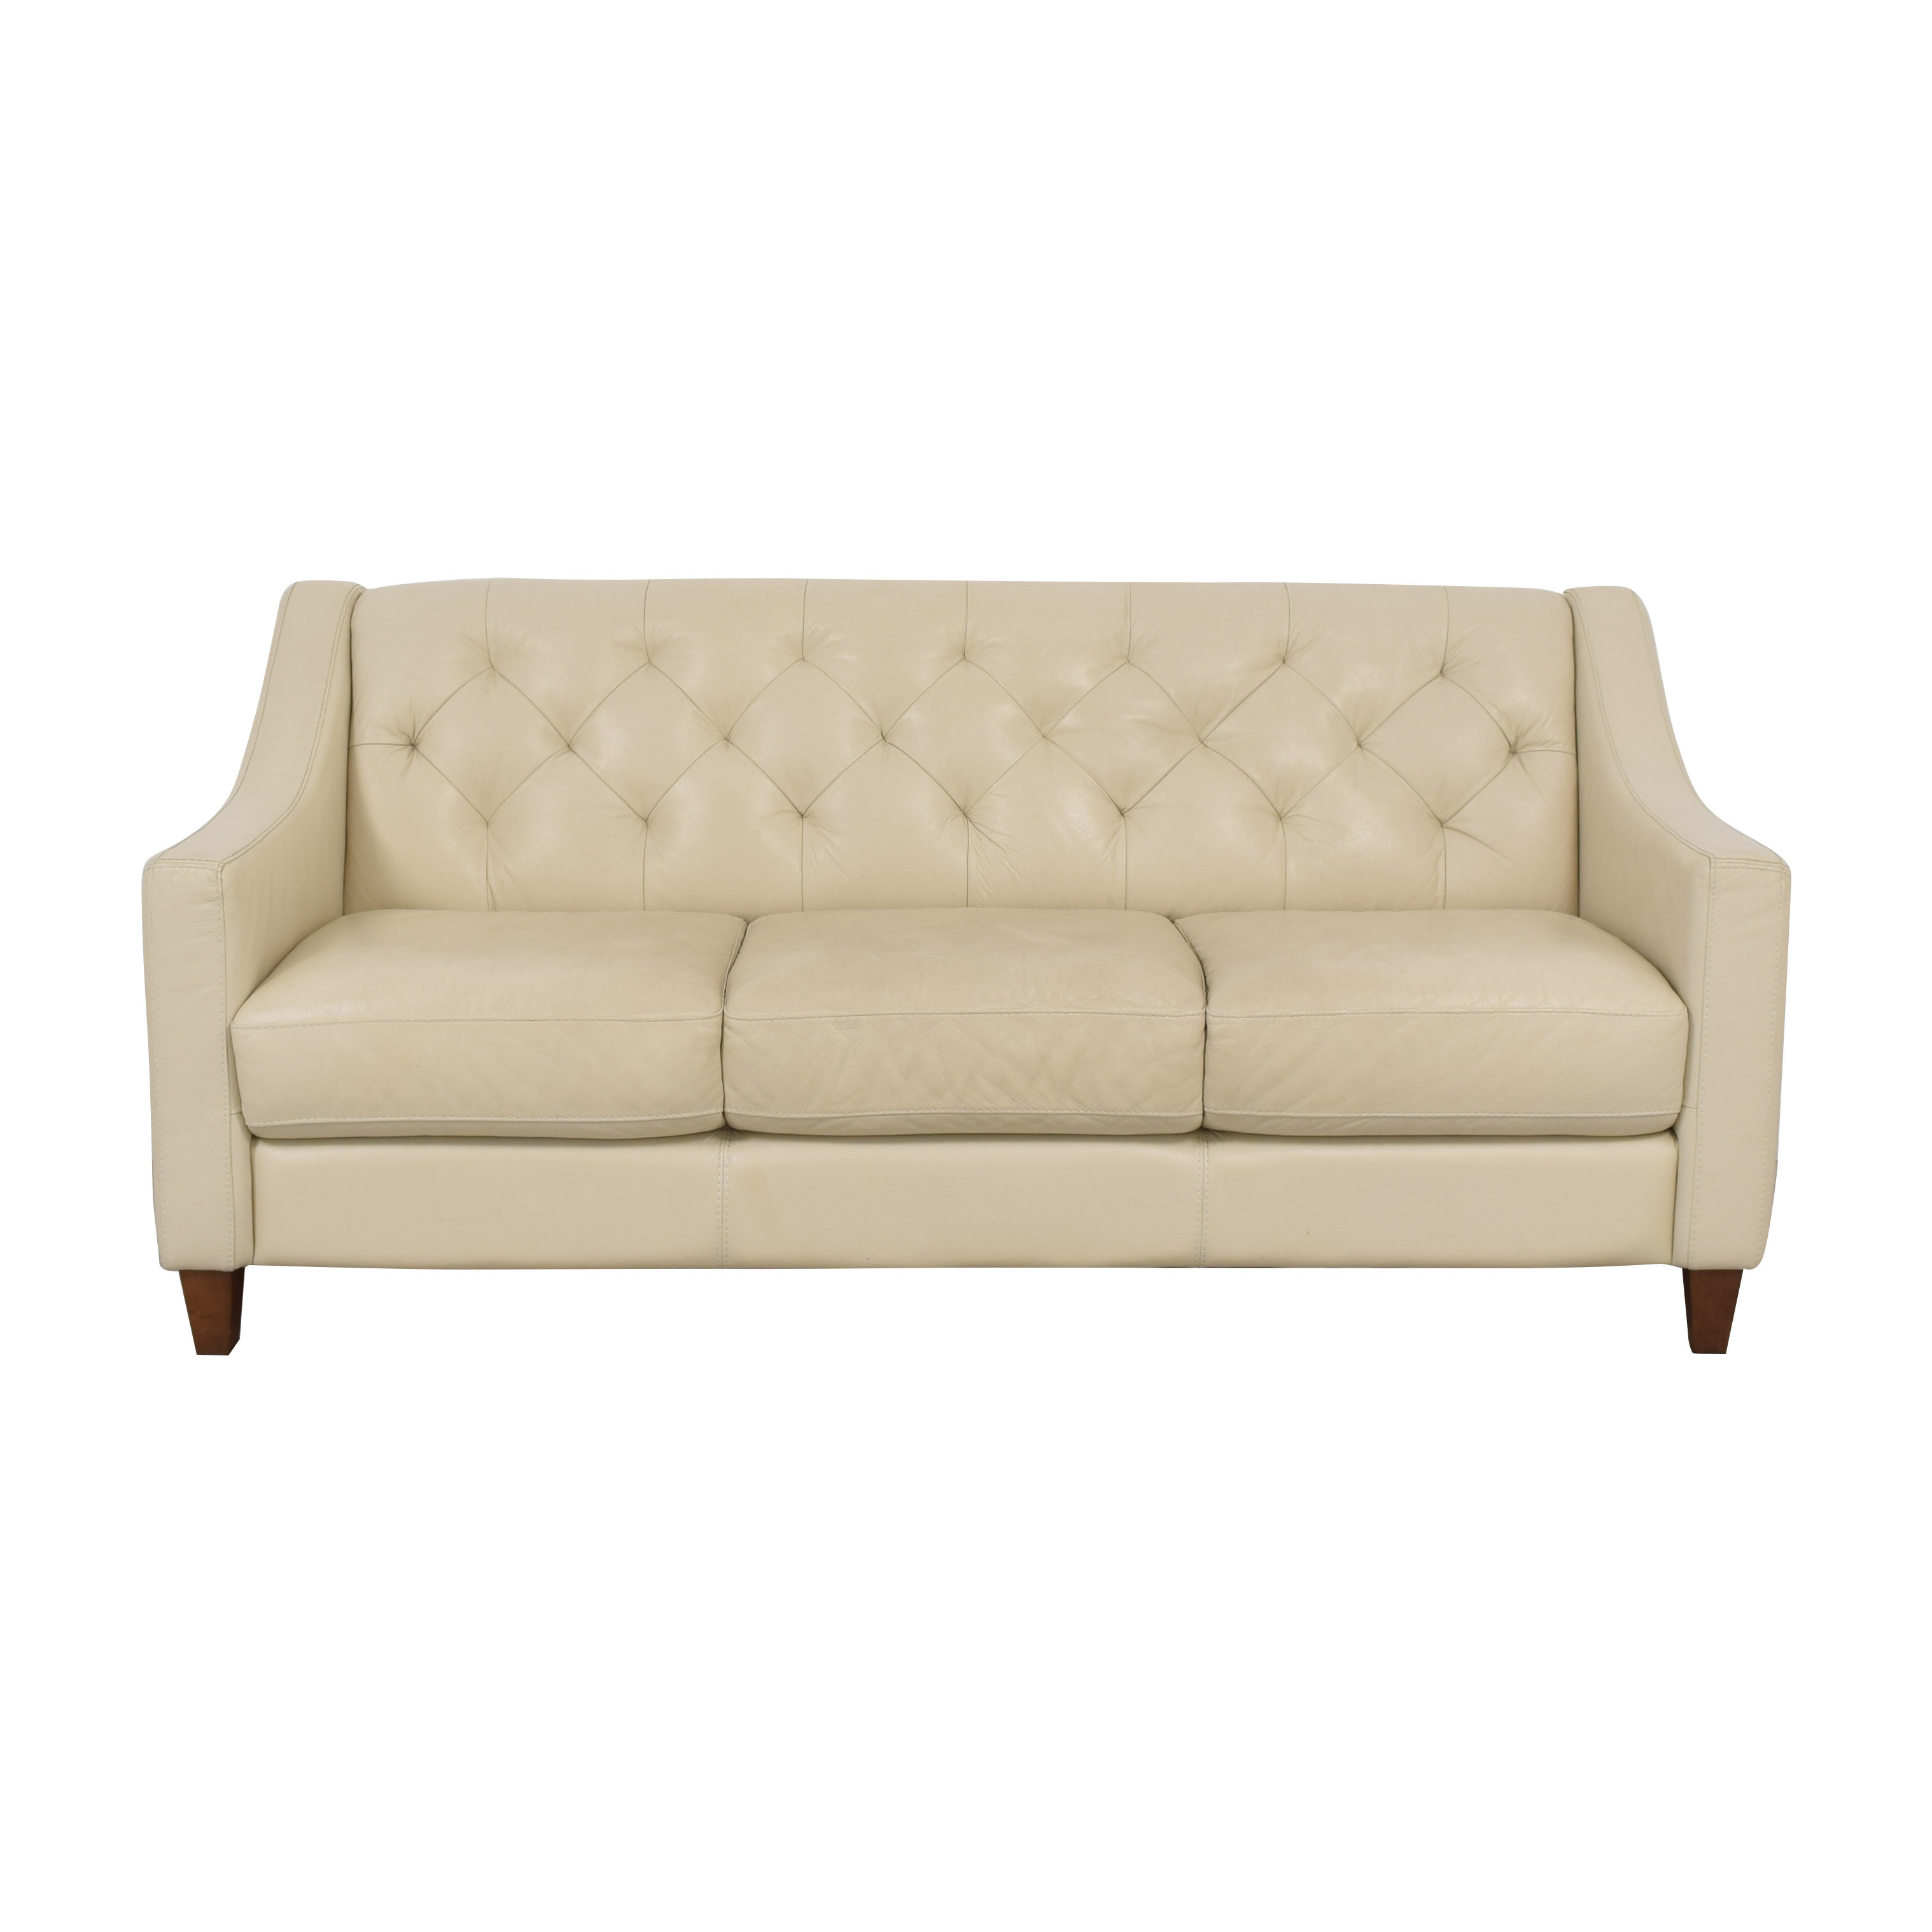 Chateau d'Ax Chateau d'Ax Slope Arm Tufted Sofa off white